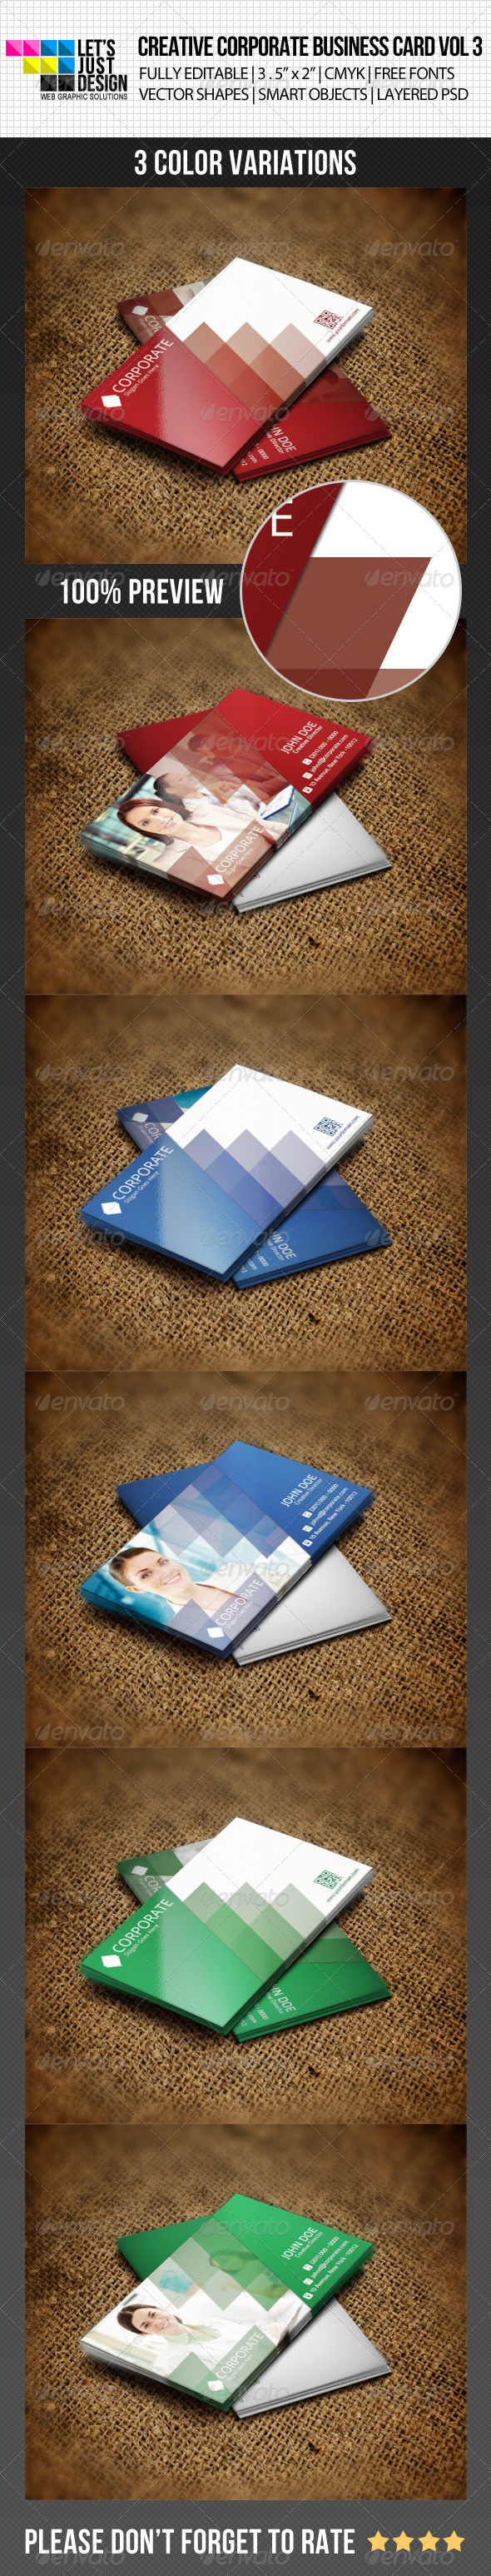 Creative Corporate Business Card Vol 3 by jasonmendes